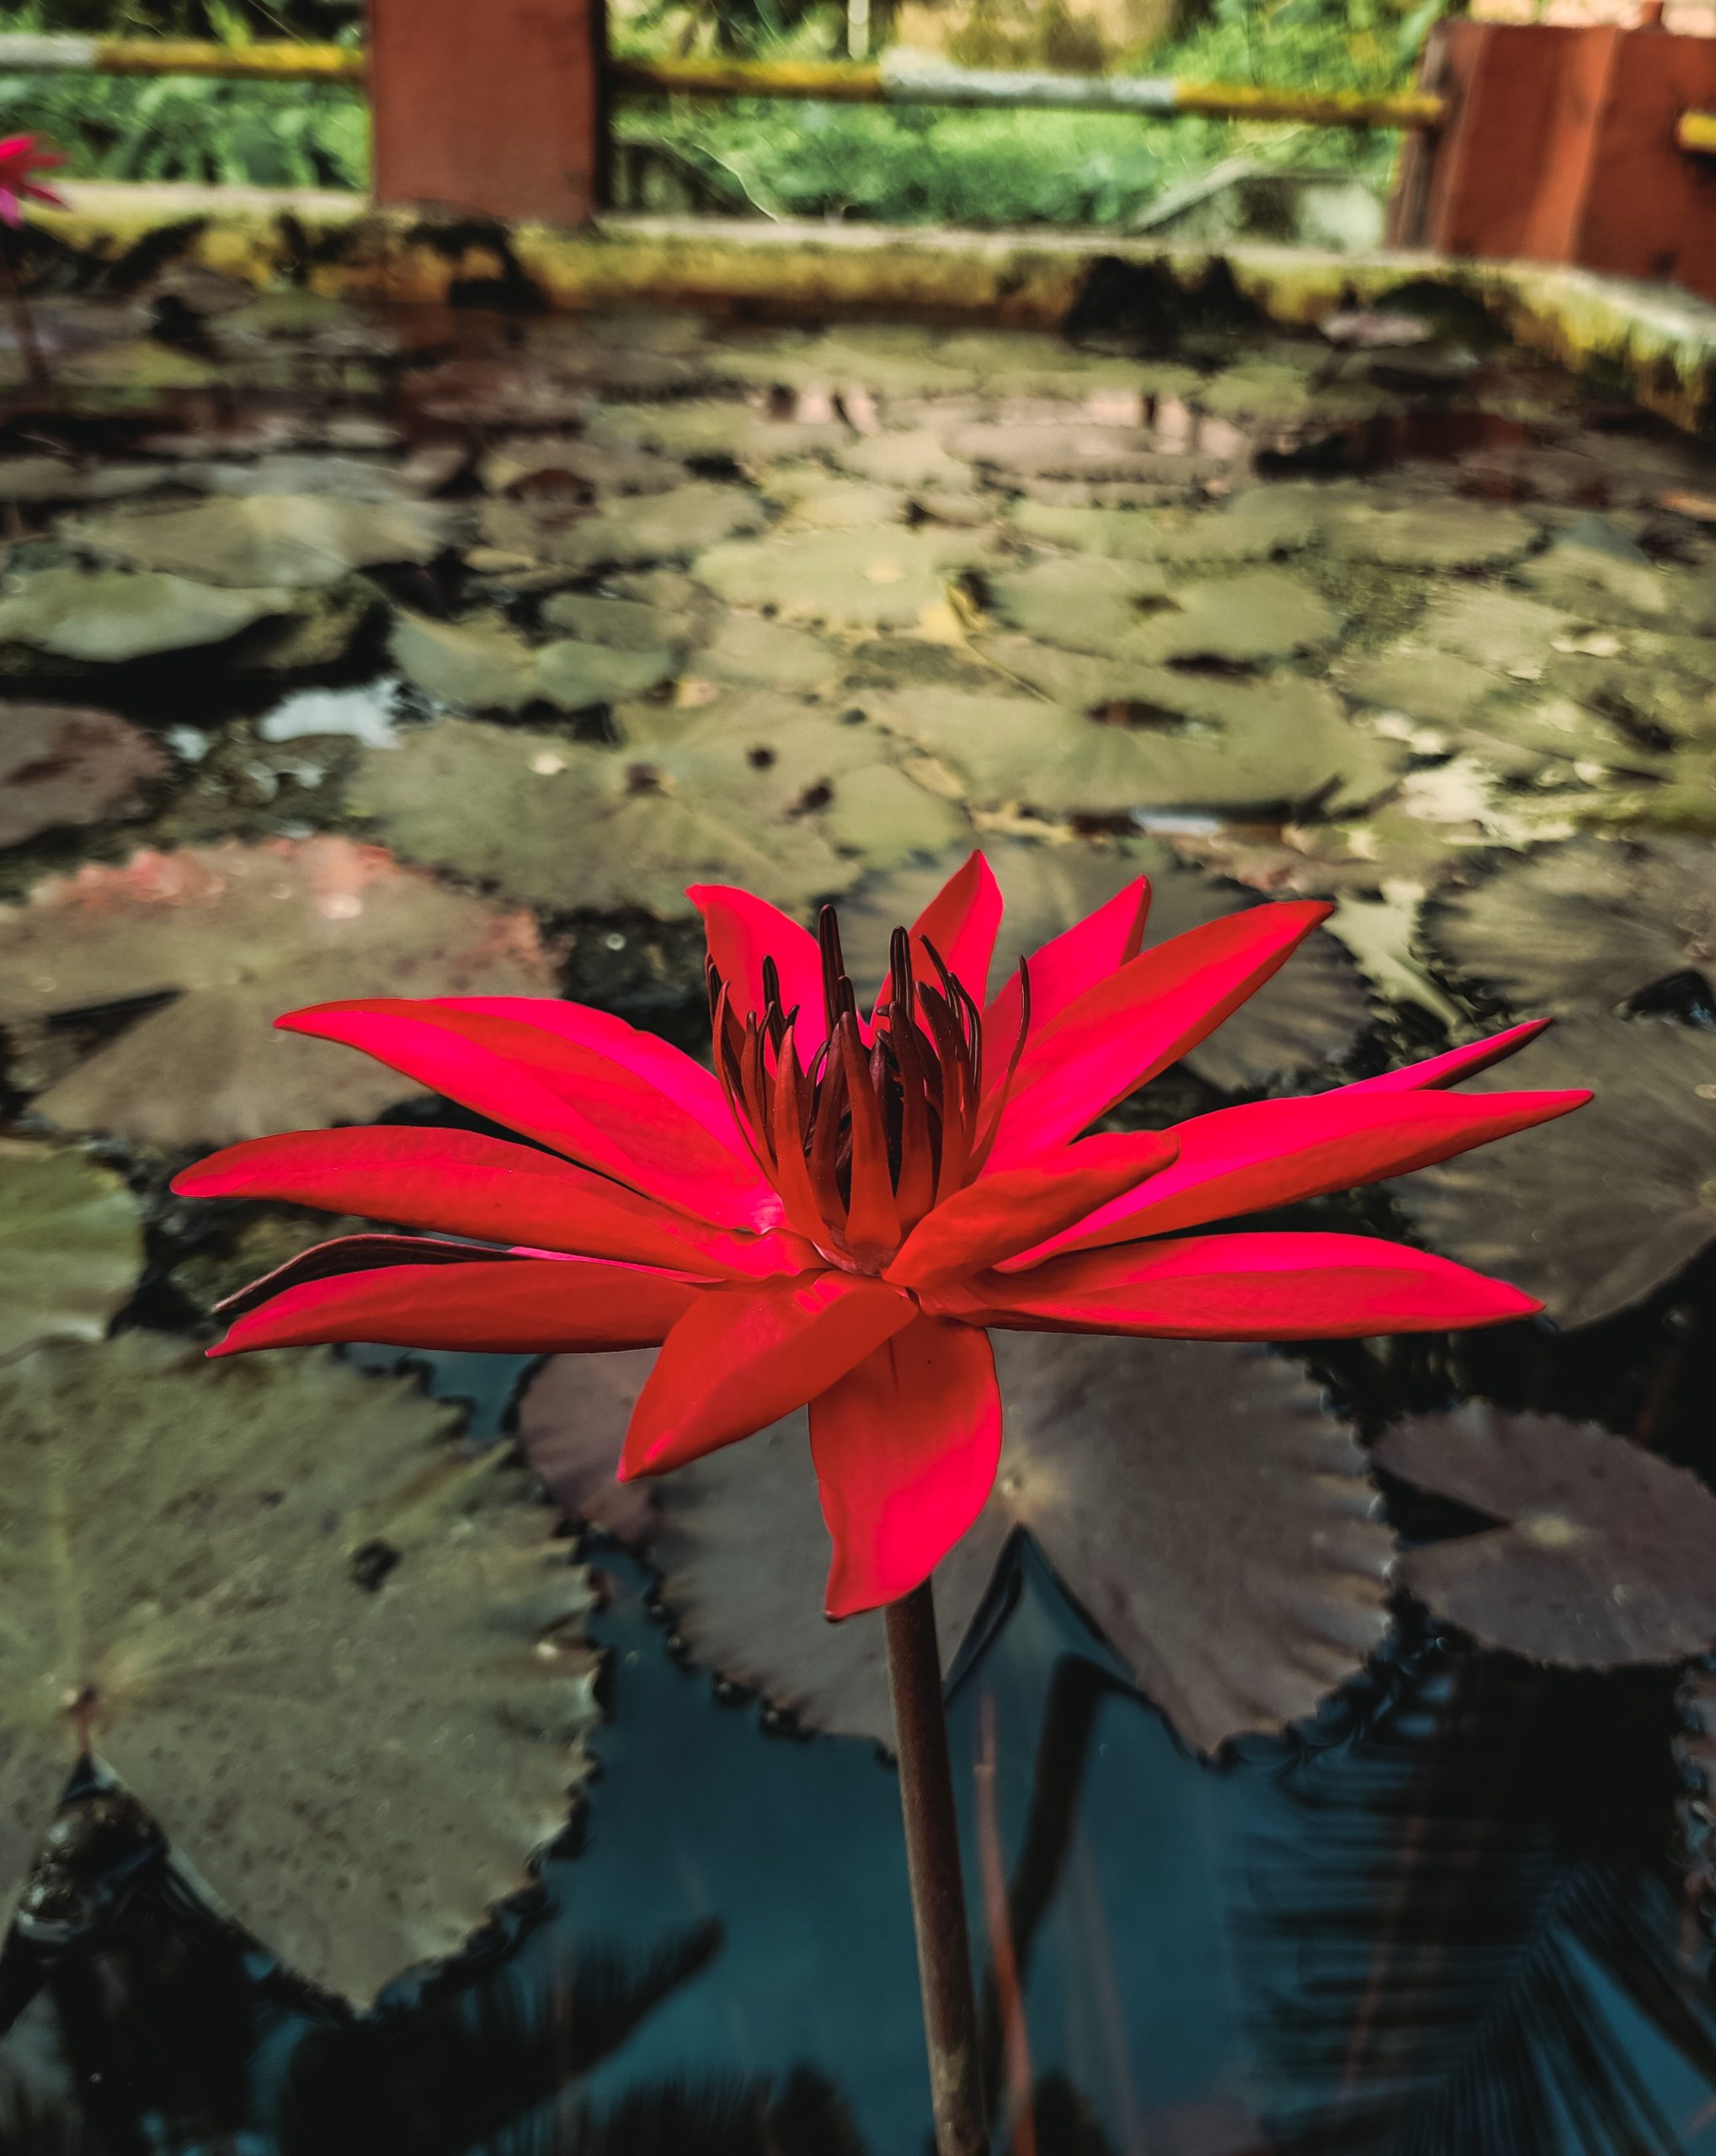 An aquatic flower